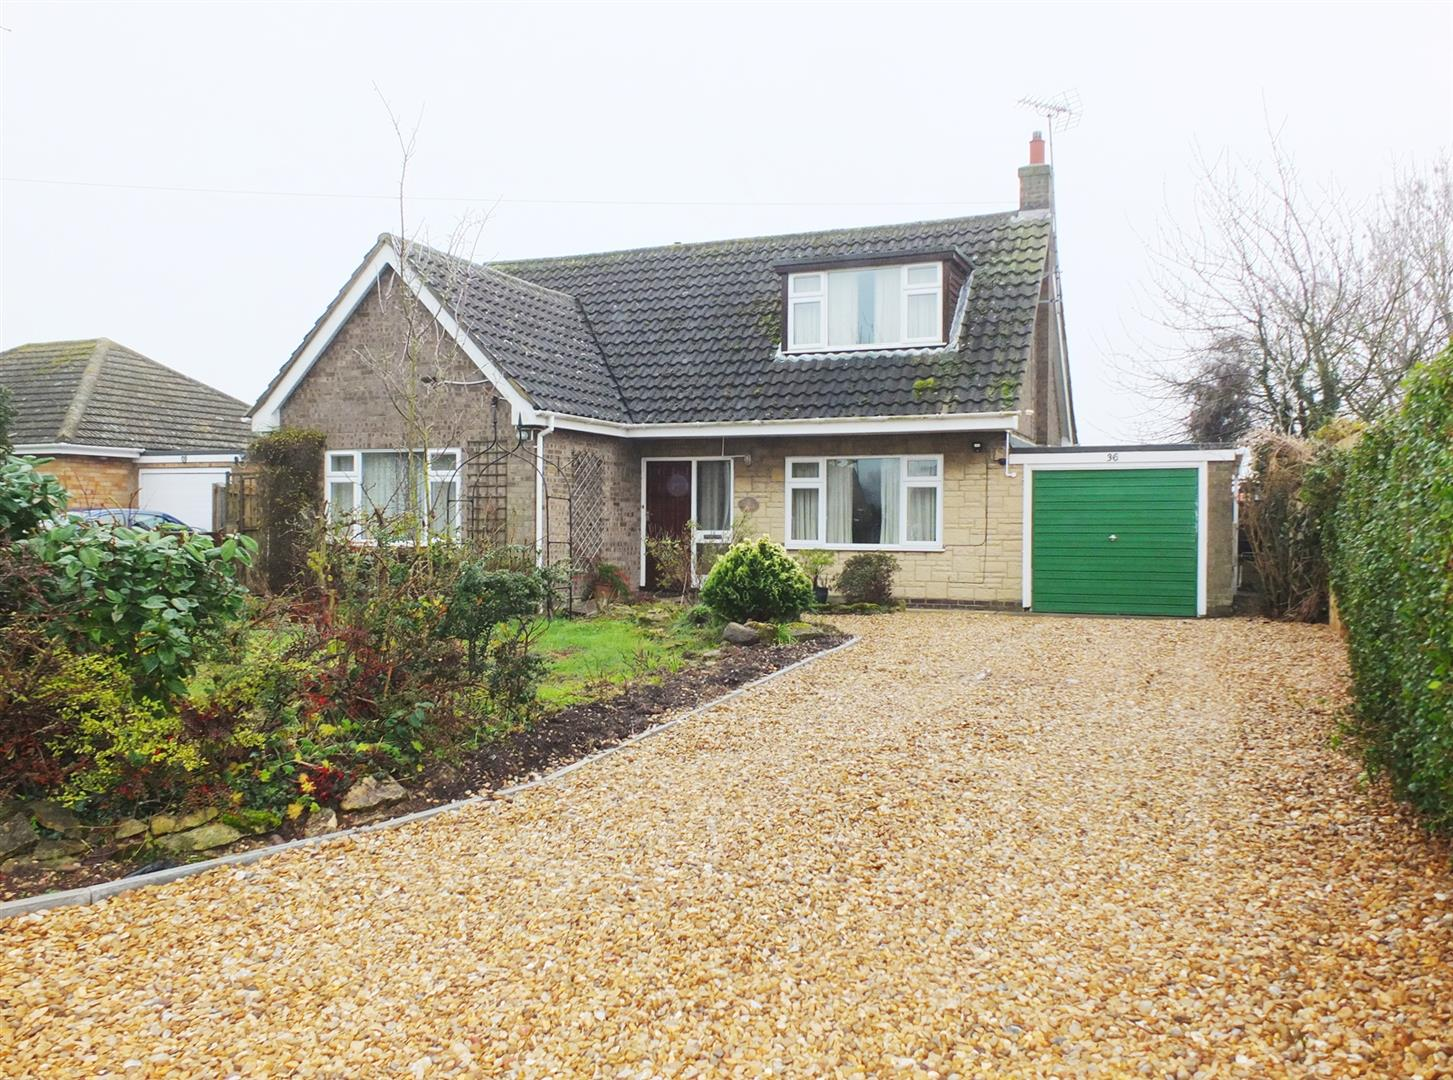 4 bed detached bungalow for sale in Lutton Spalding, PE12 9HP, PE12